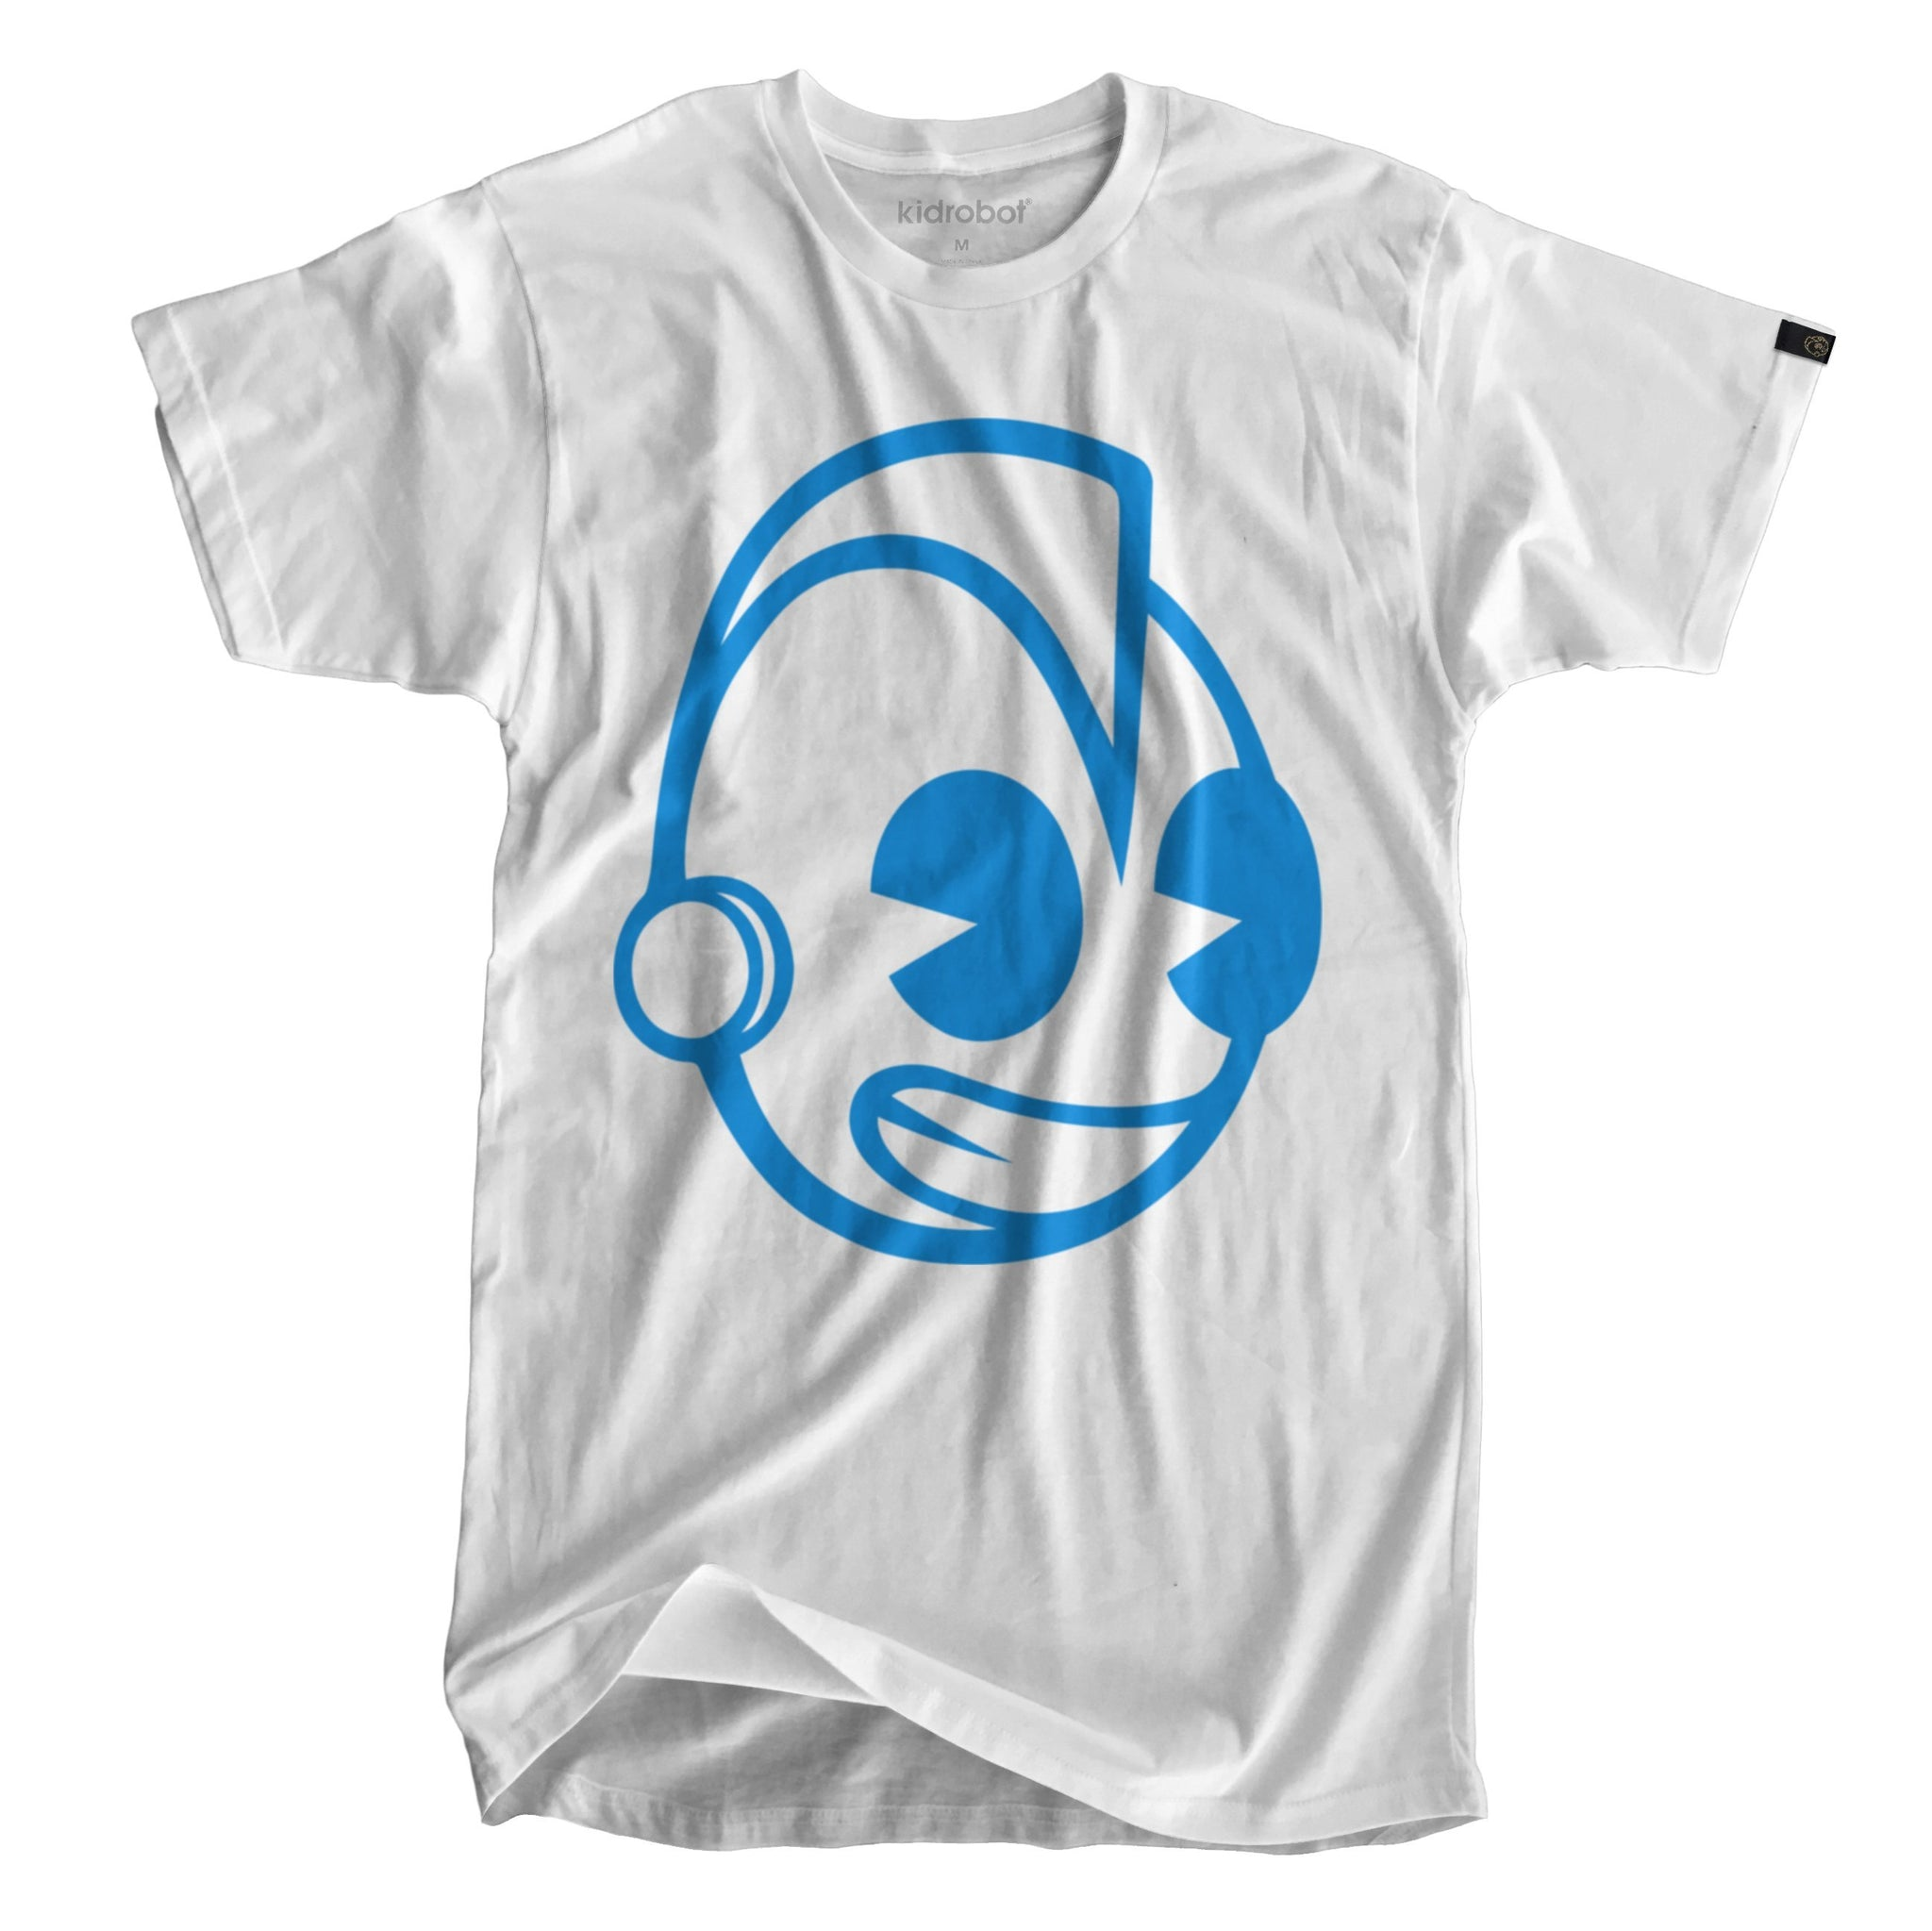 Cotton - Limited Edition Kidrobot Blue Signature Bothead White T-Shirt (XXL)